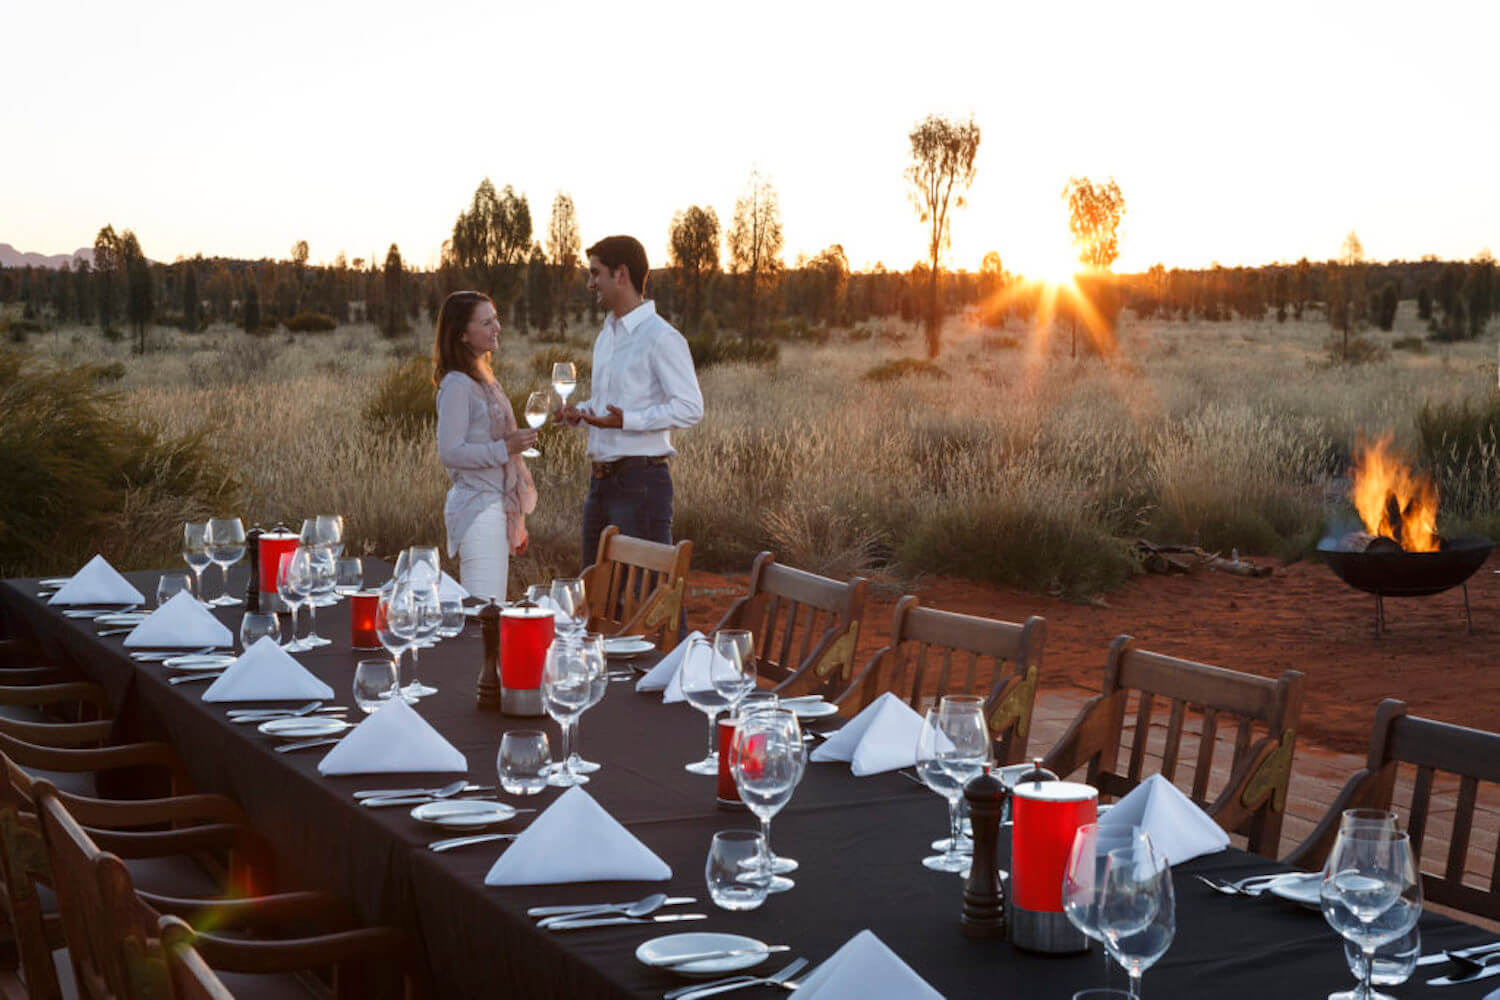 Table 131°, a spectacular dinner under the stars